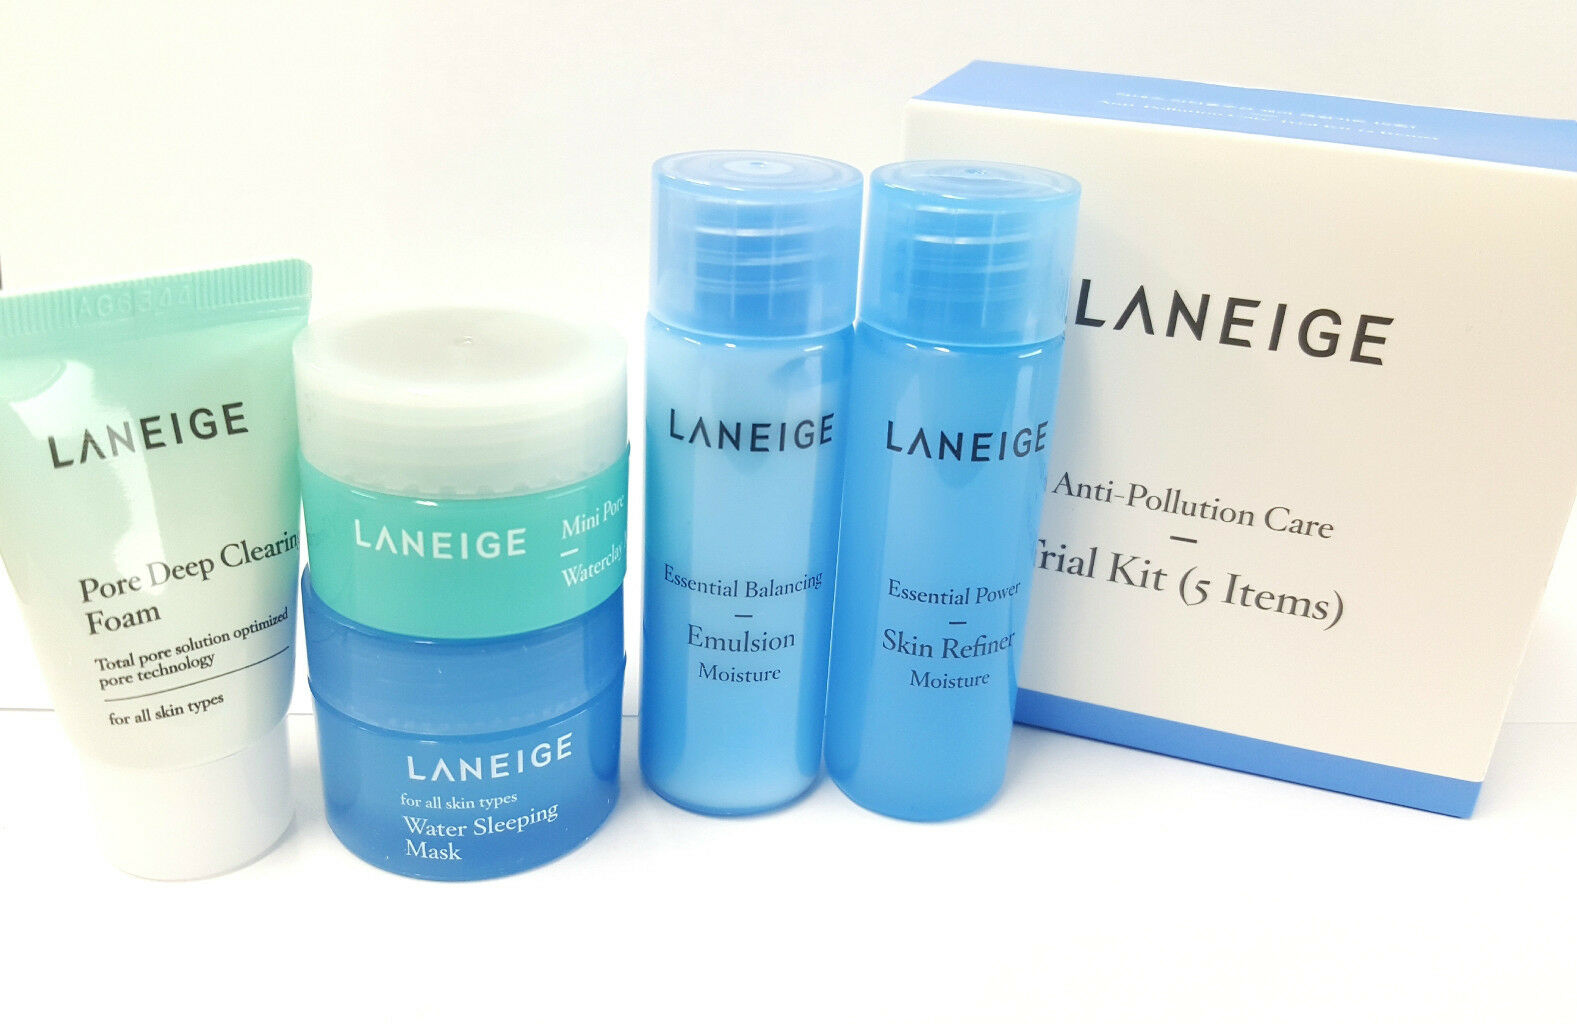 Laneige White Plus Renew Trial Kit 4 Items Anti Pollution Care 5items 25ml 10ml 1 Of 1free Shipping See More